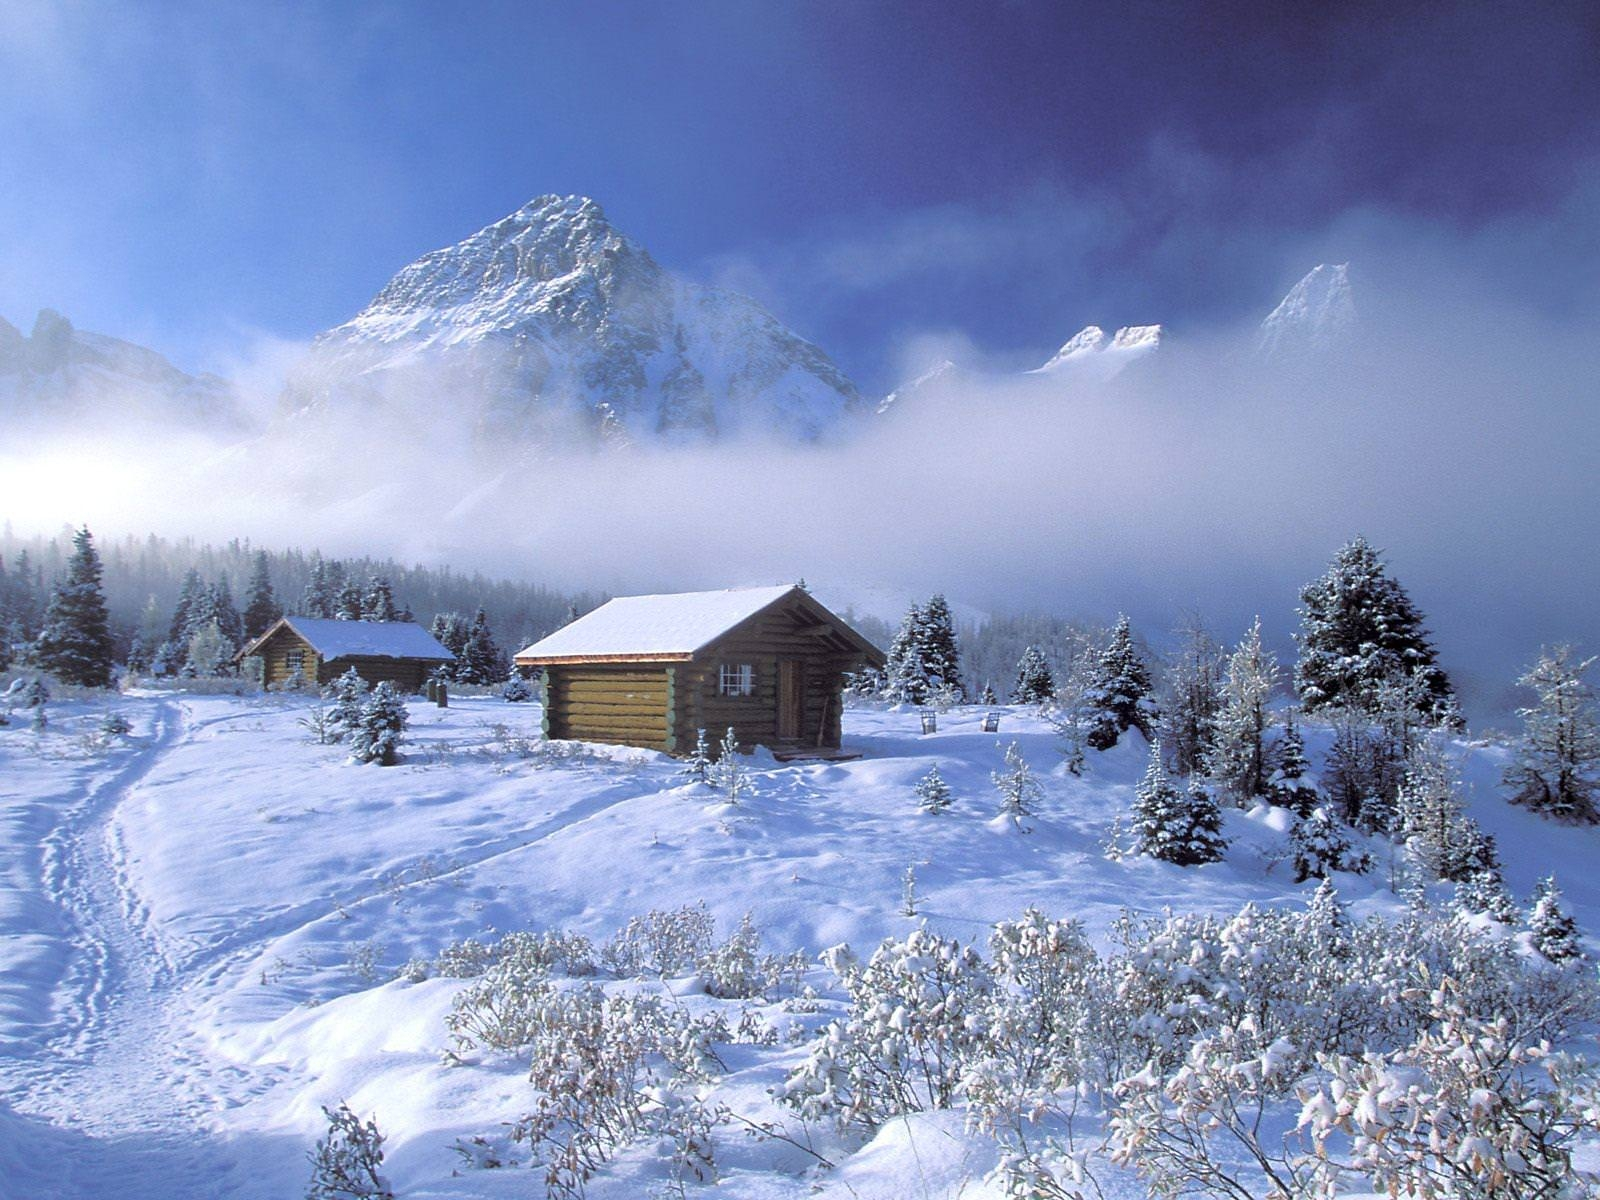 Winter Scenes For Desktop Wallpaper